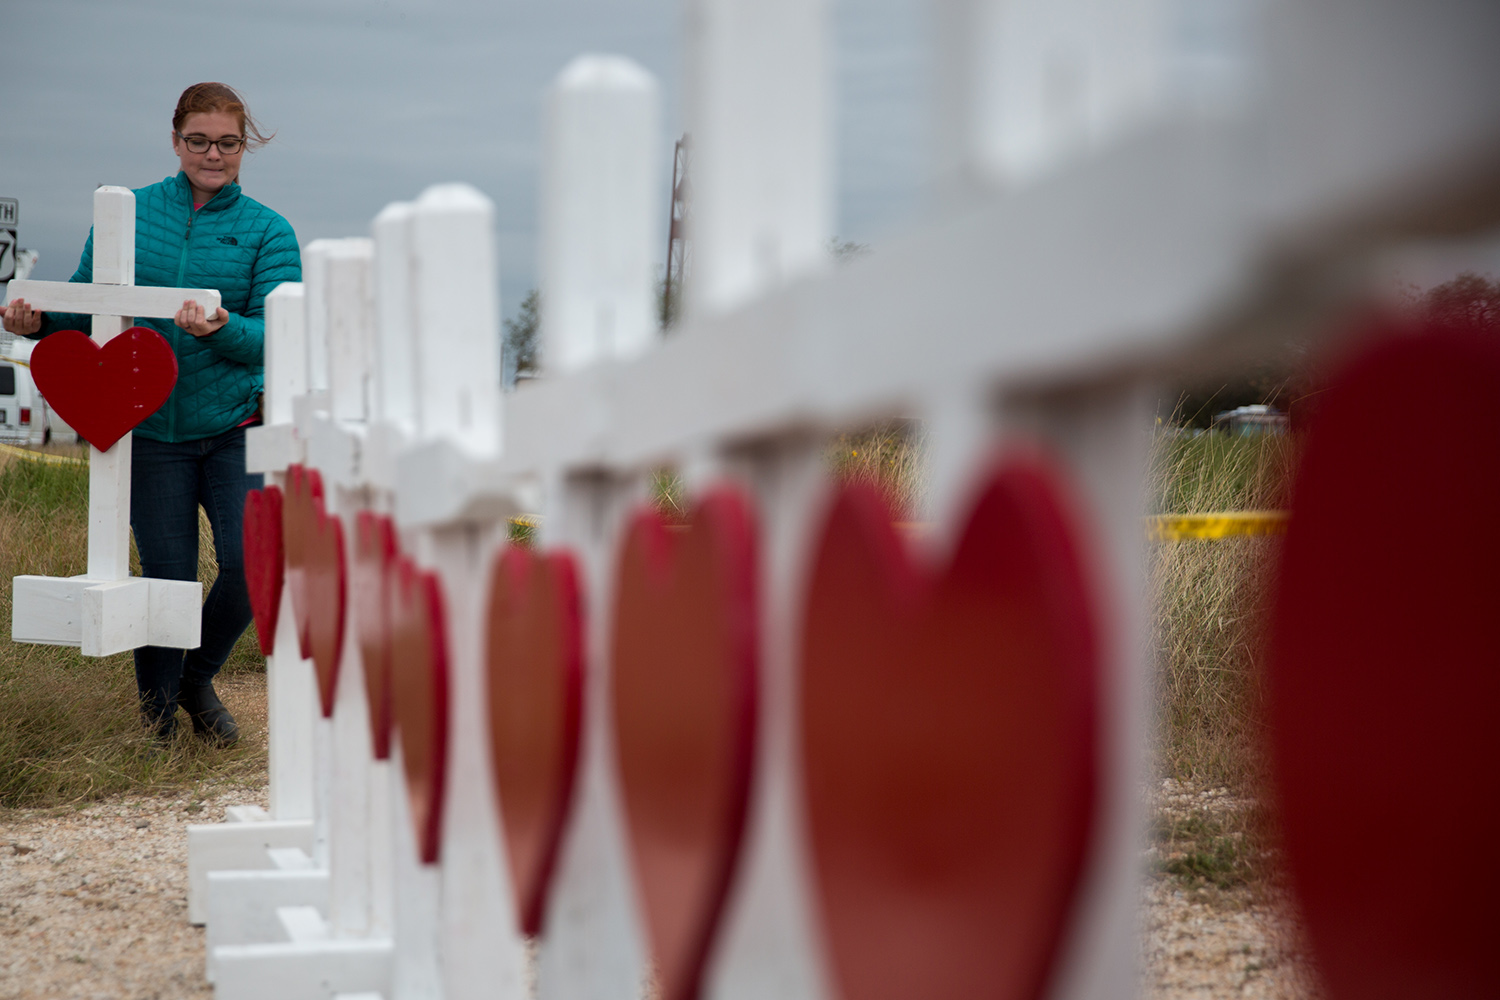 Hannah Krueger adds a cross to a memorial near the First Baptist Church in Sutherland Springs on Nov. 8, 2017, three days after 23 churchgoers were killed in a mass shooting there.